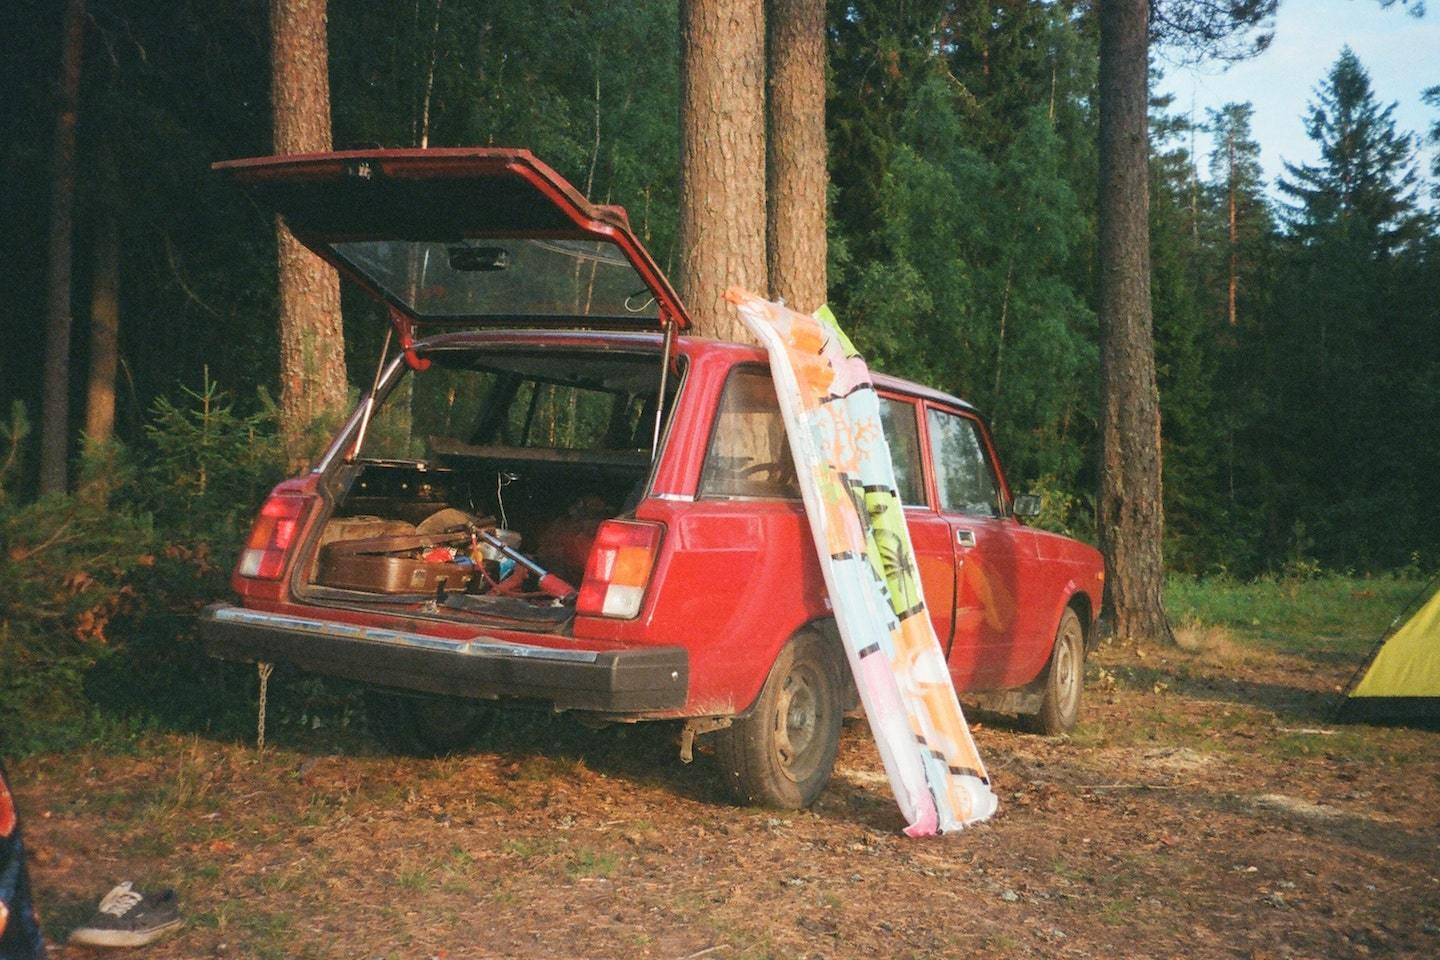 car with open trunk and camping equipment